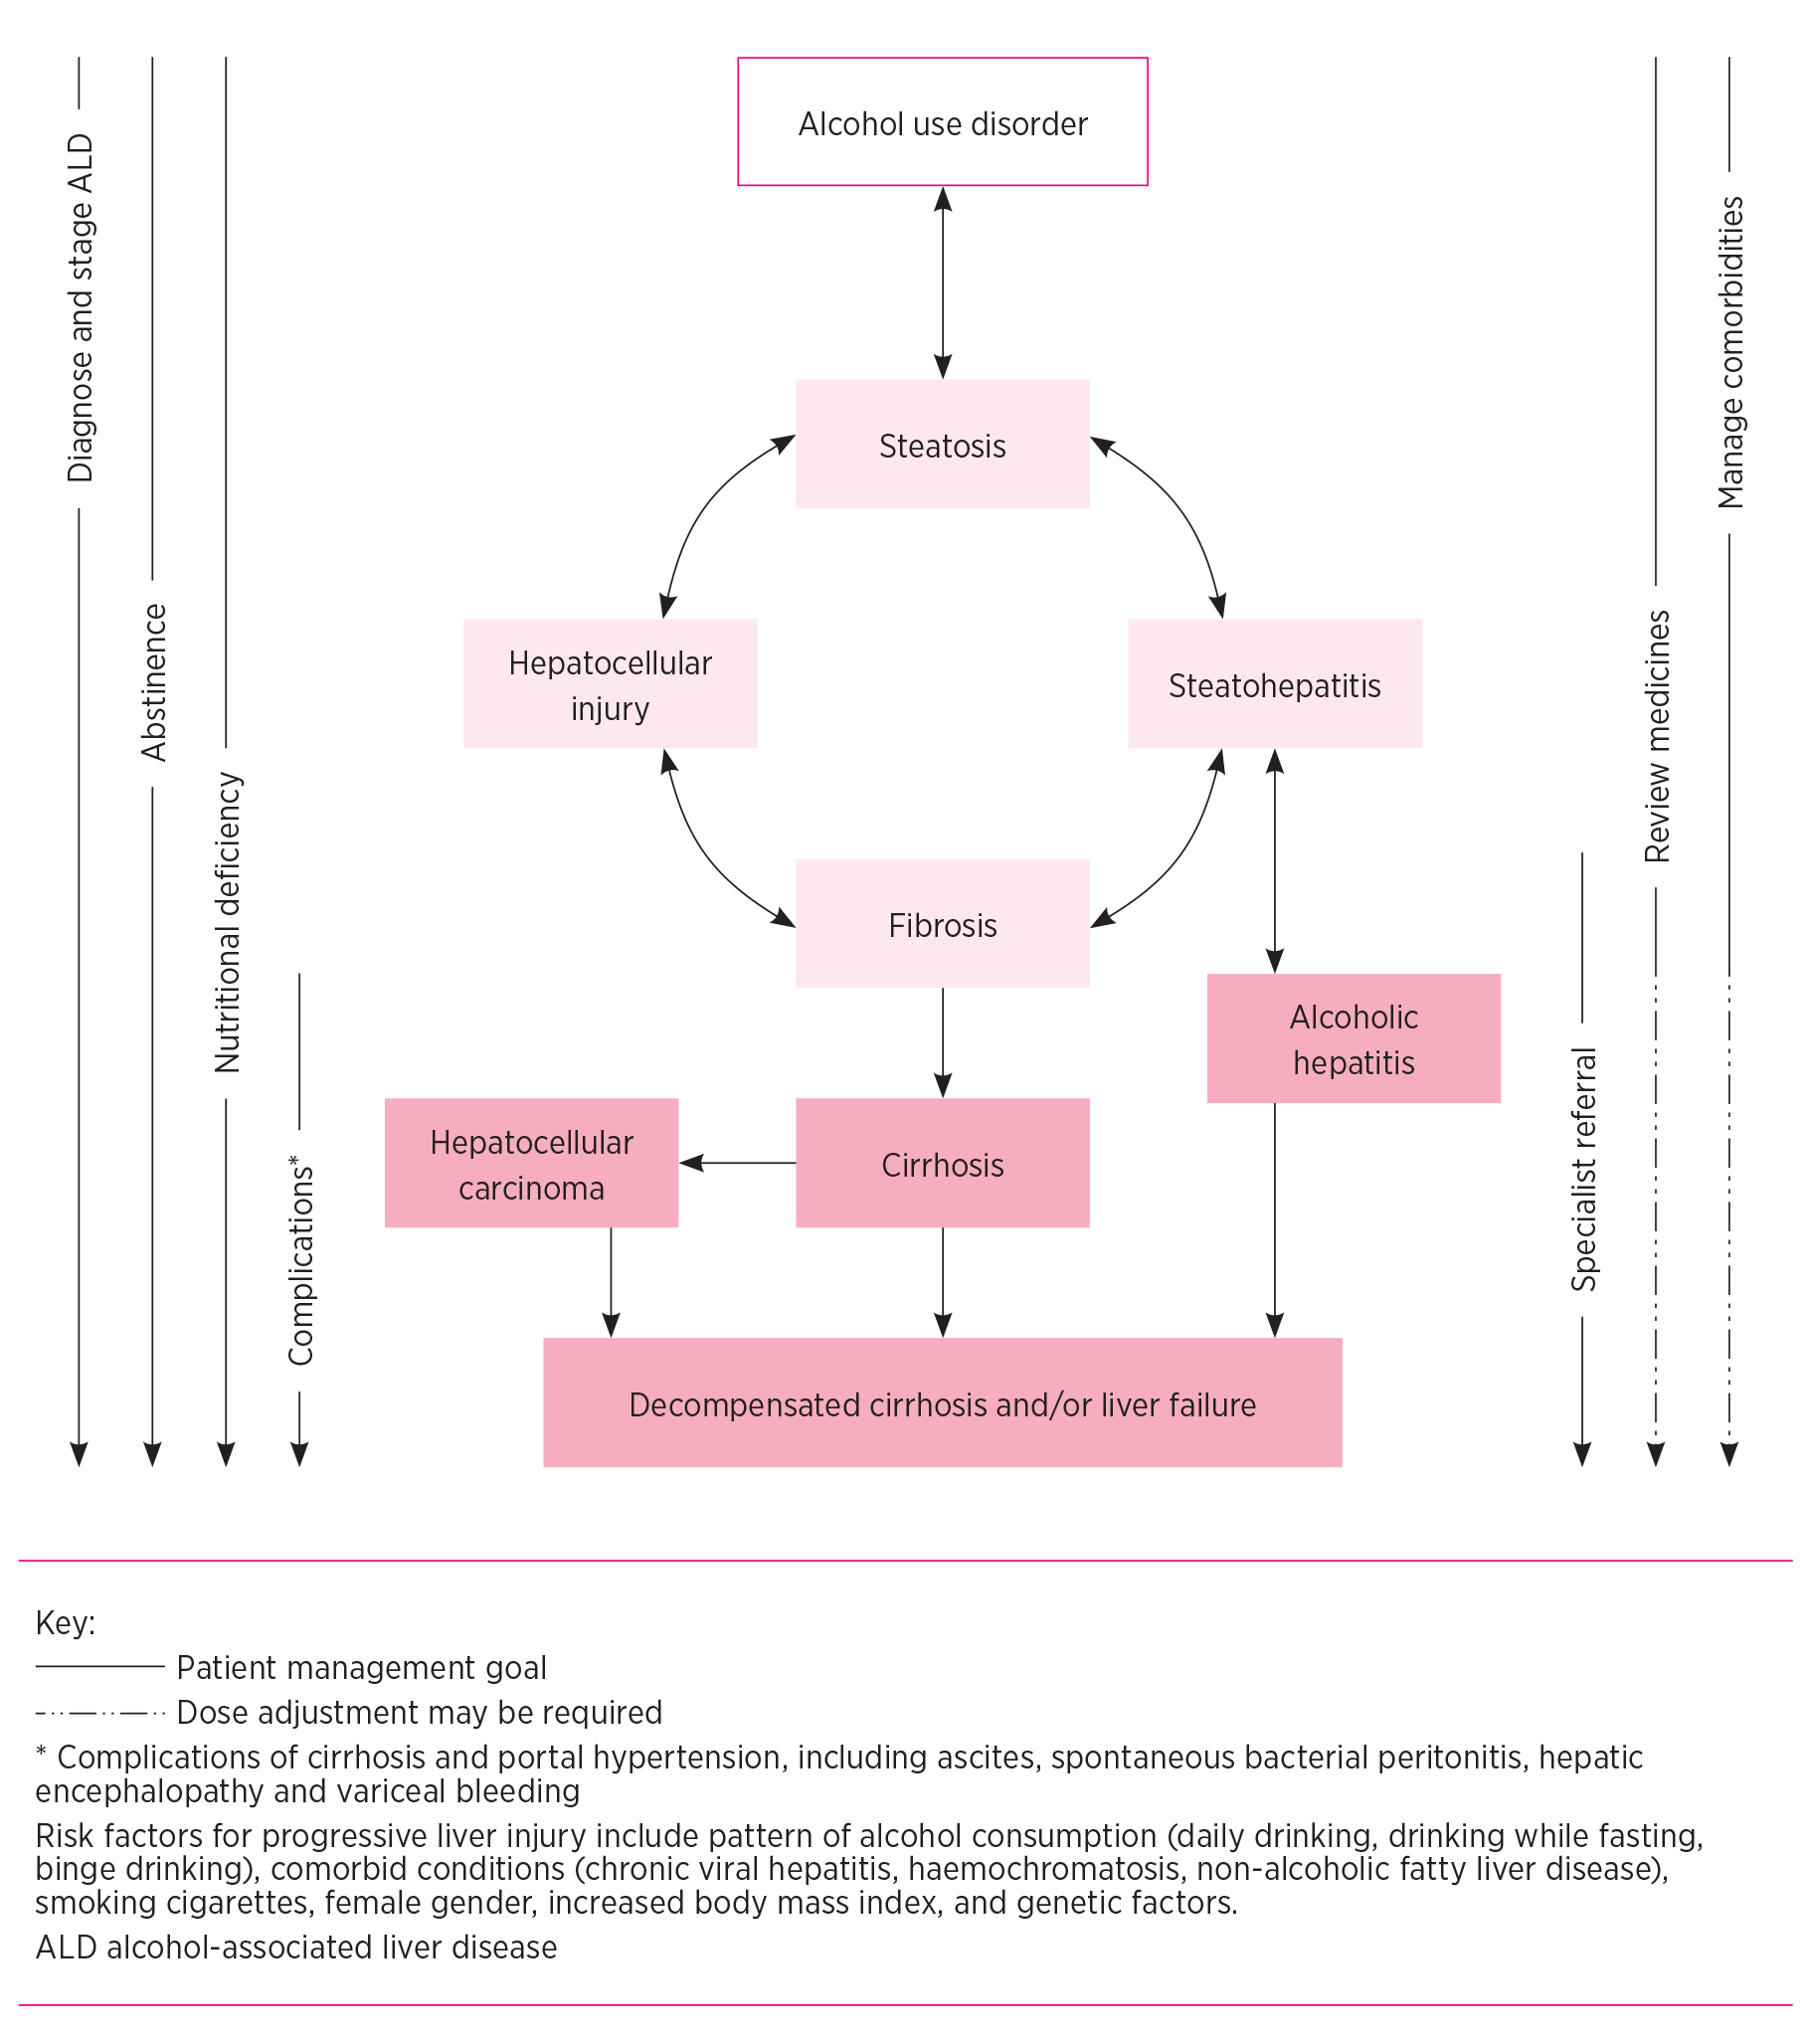 Managing medicines in alcohol-associated liver disease: a practical review